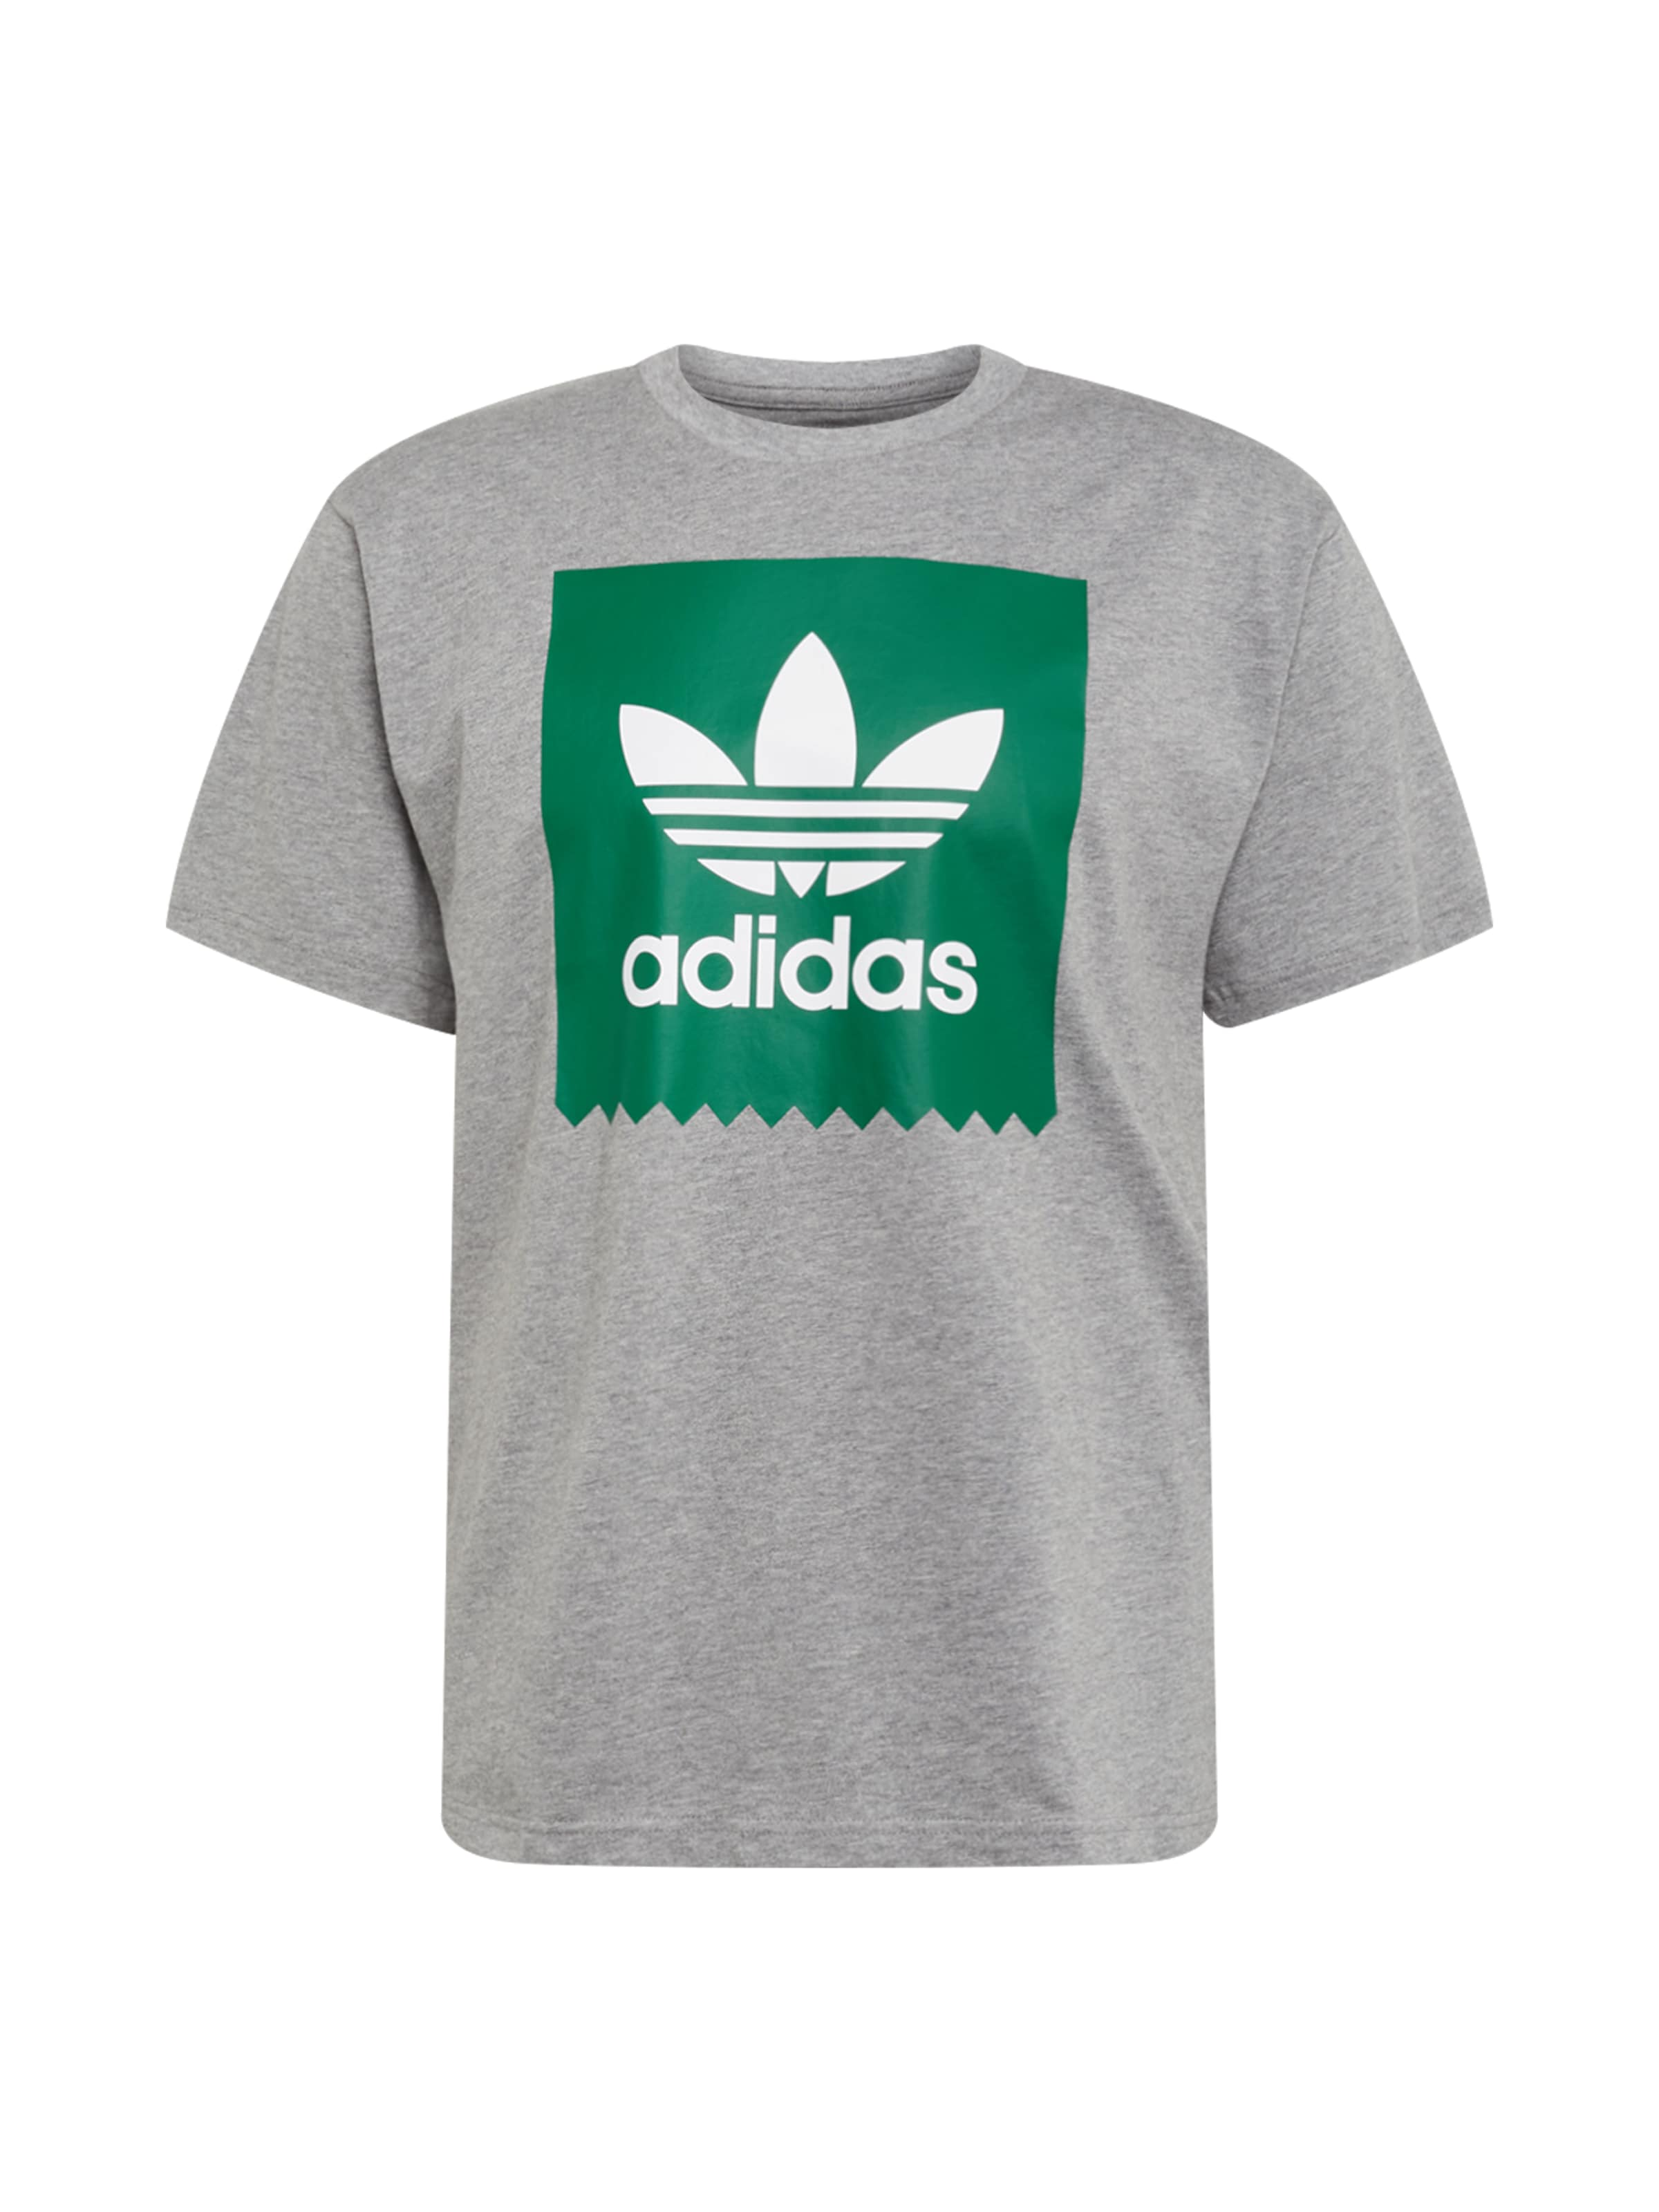 Adidas Originals GrauGrün In T 'solid shirt Bb' WrECxeQdBo